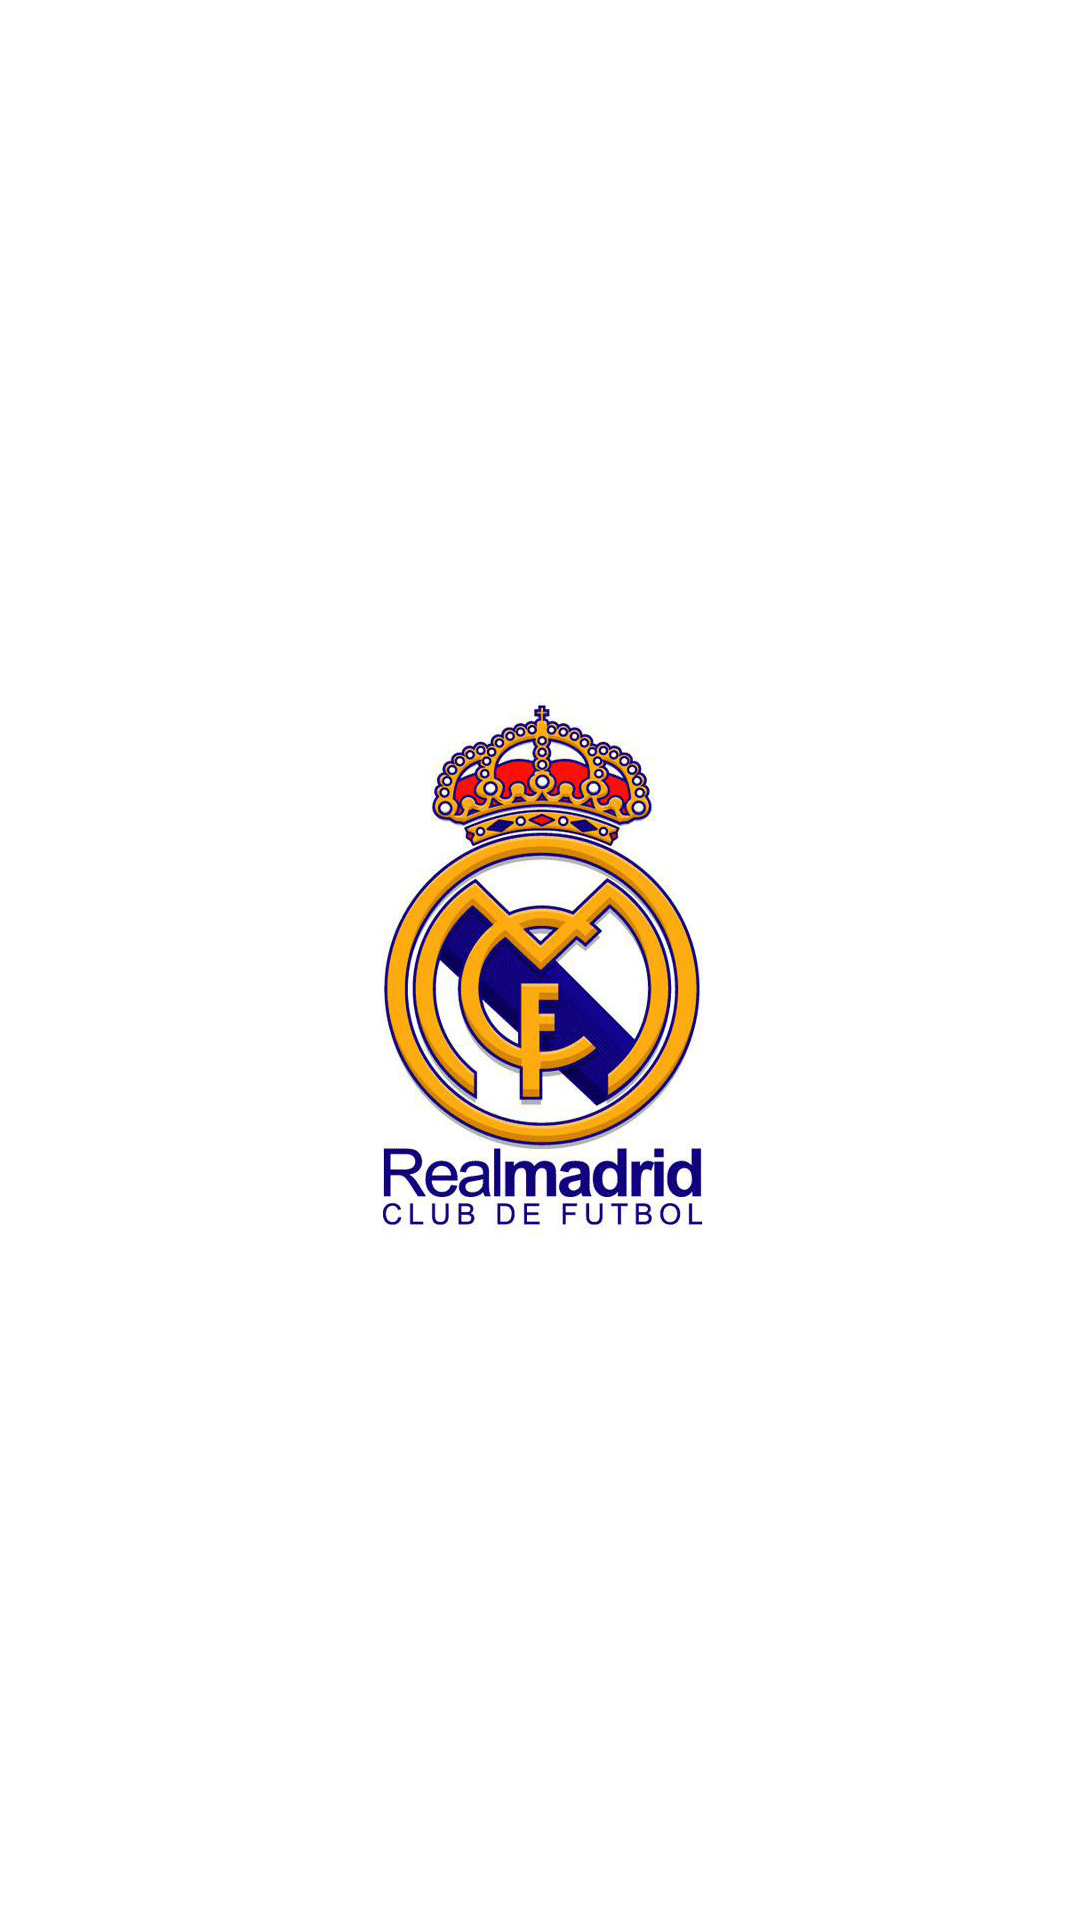 iPhone 6 Plus HD Wallpaper Real Madrid Logo in white background 1080x1920